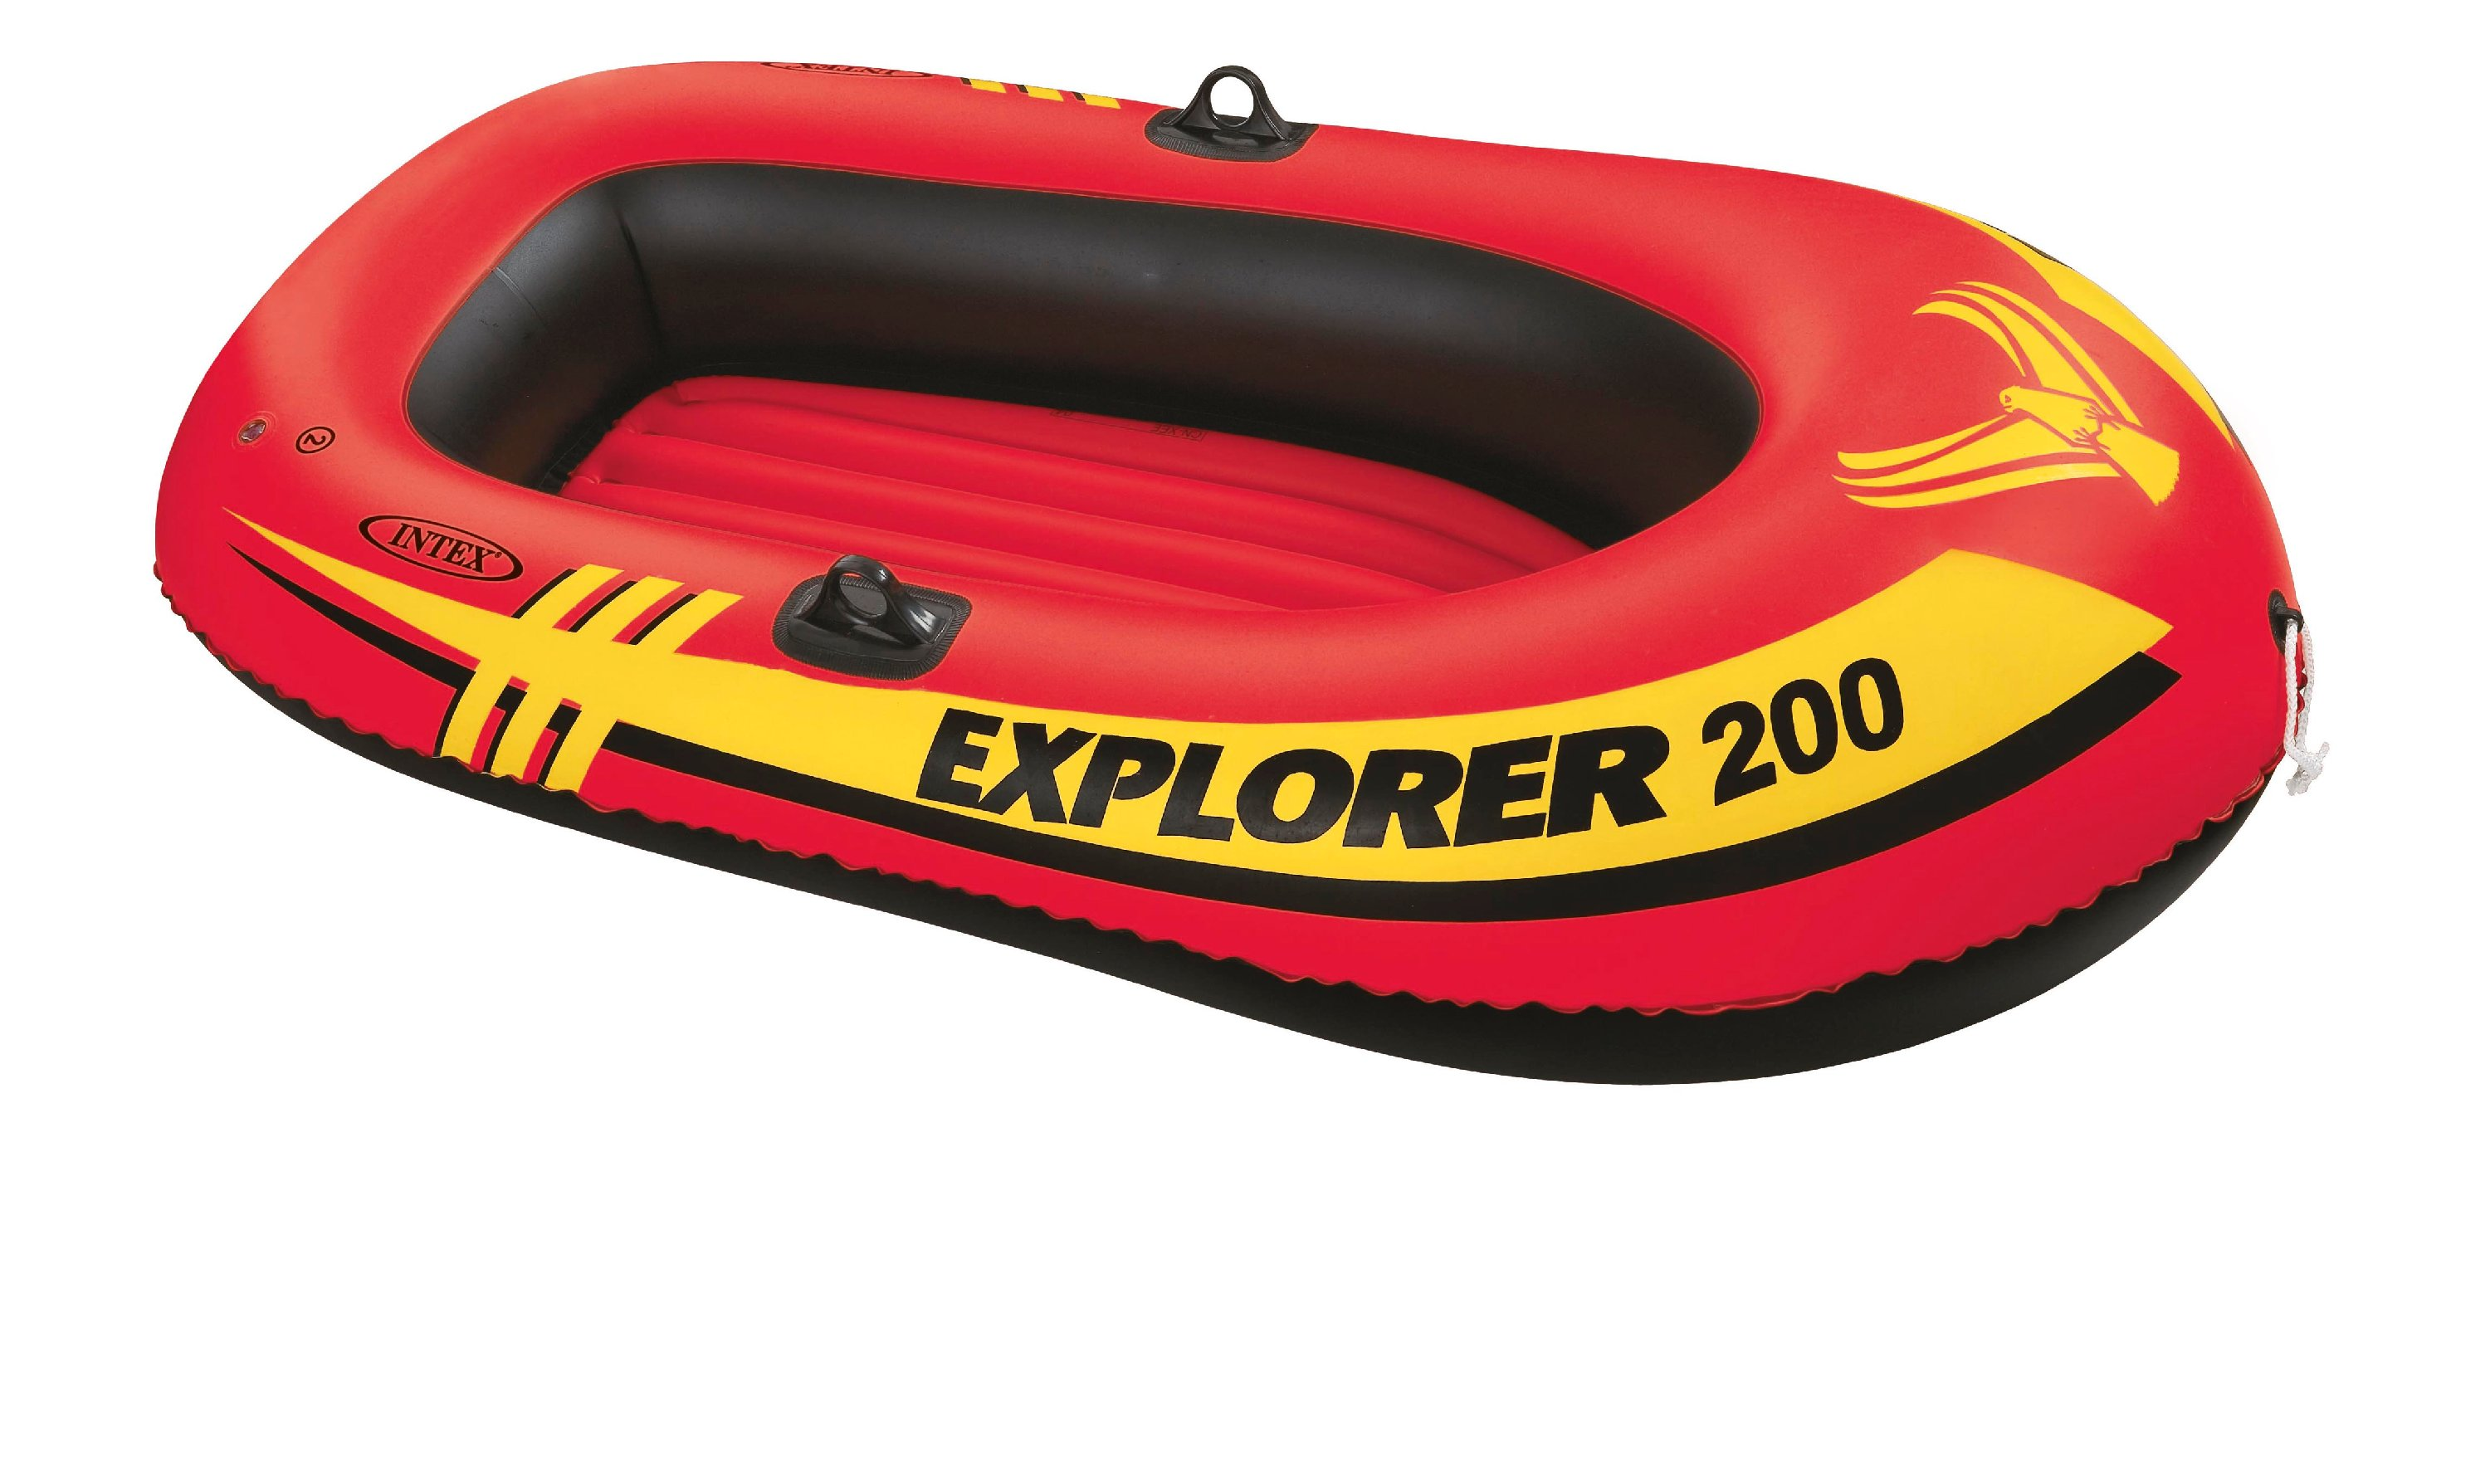 Intex Explorer 200 Boat by Intex